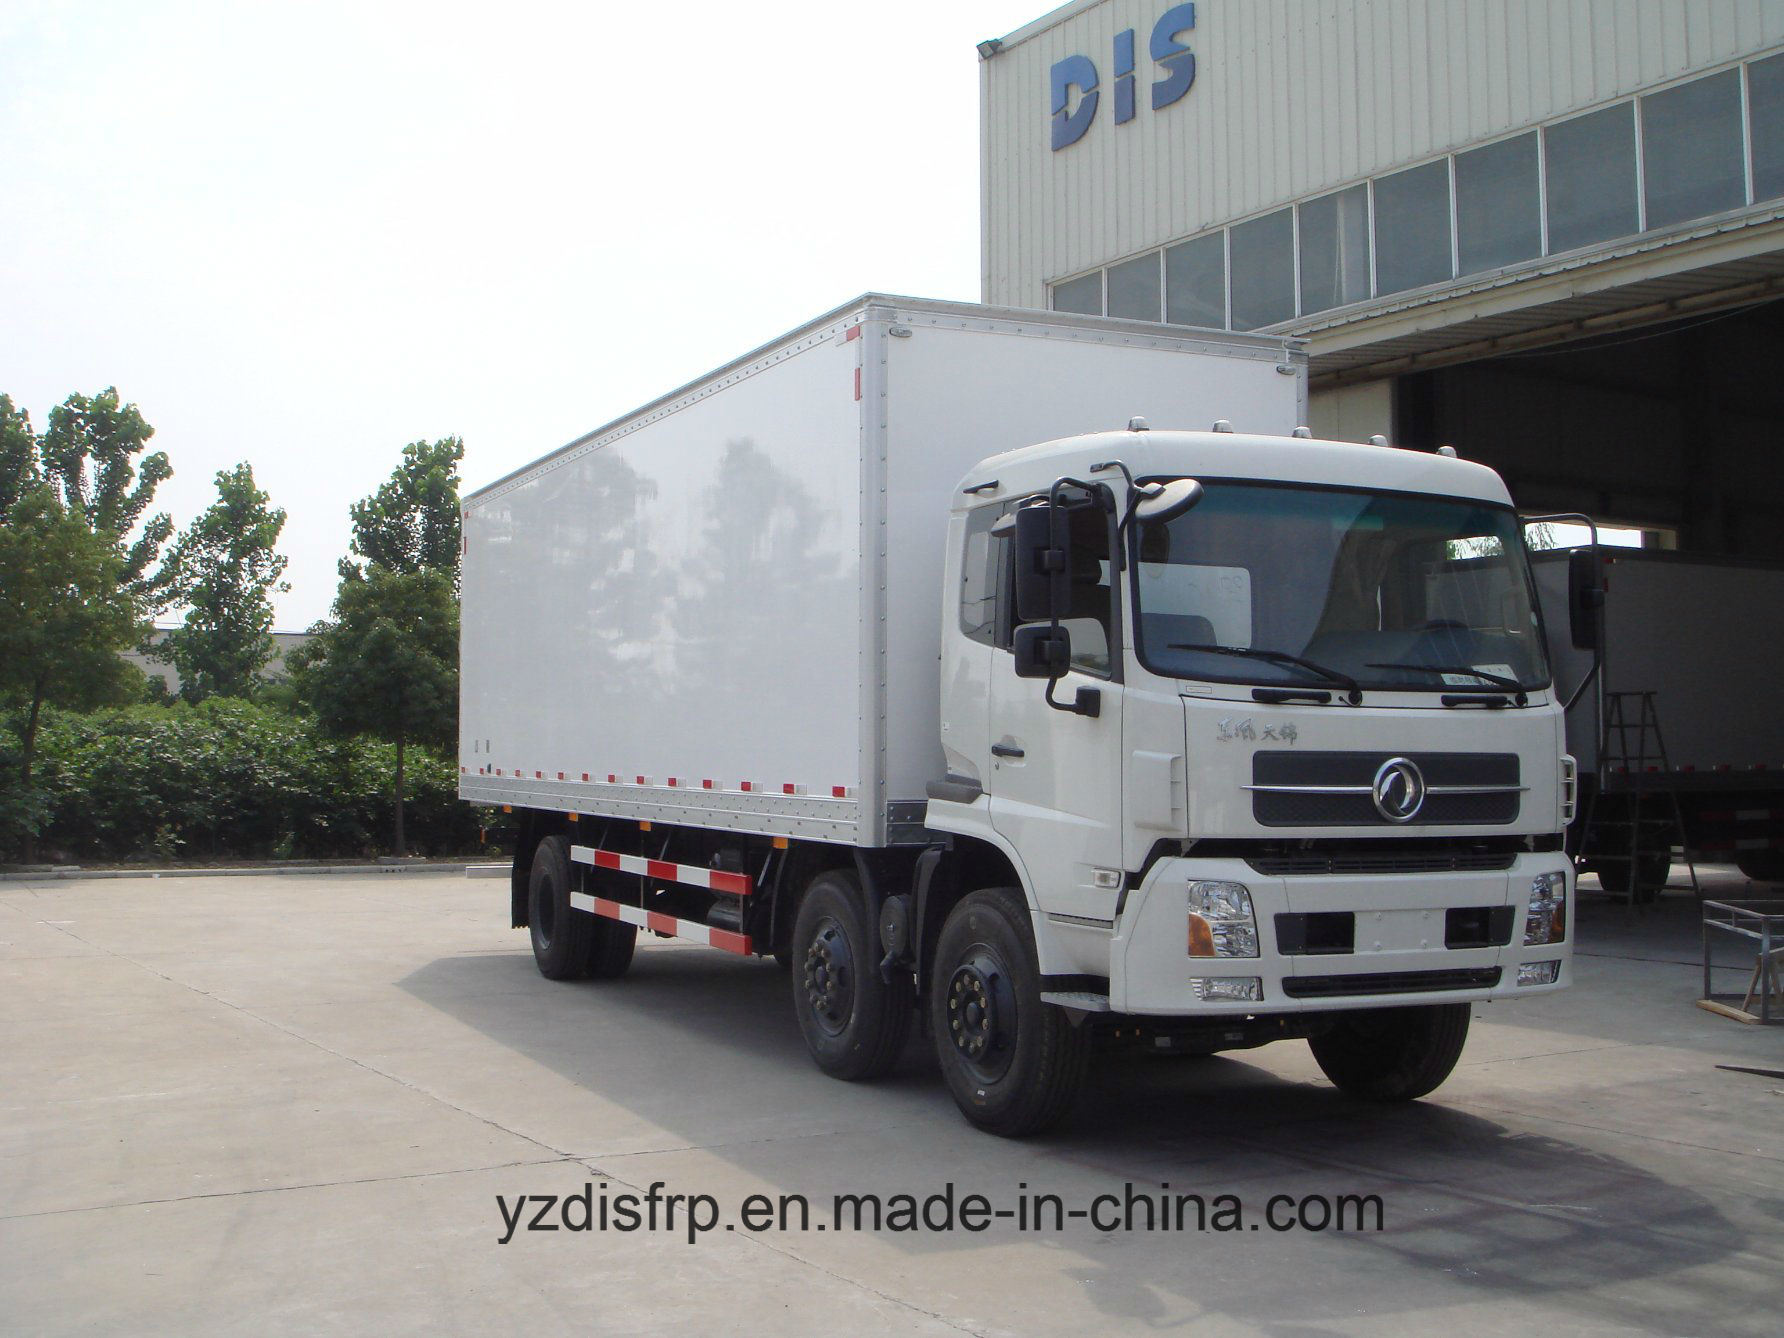 Easily Cleanable FRP Dry Truck Body for Logistics